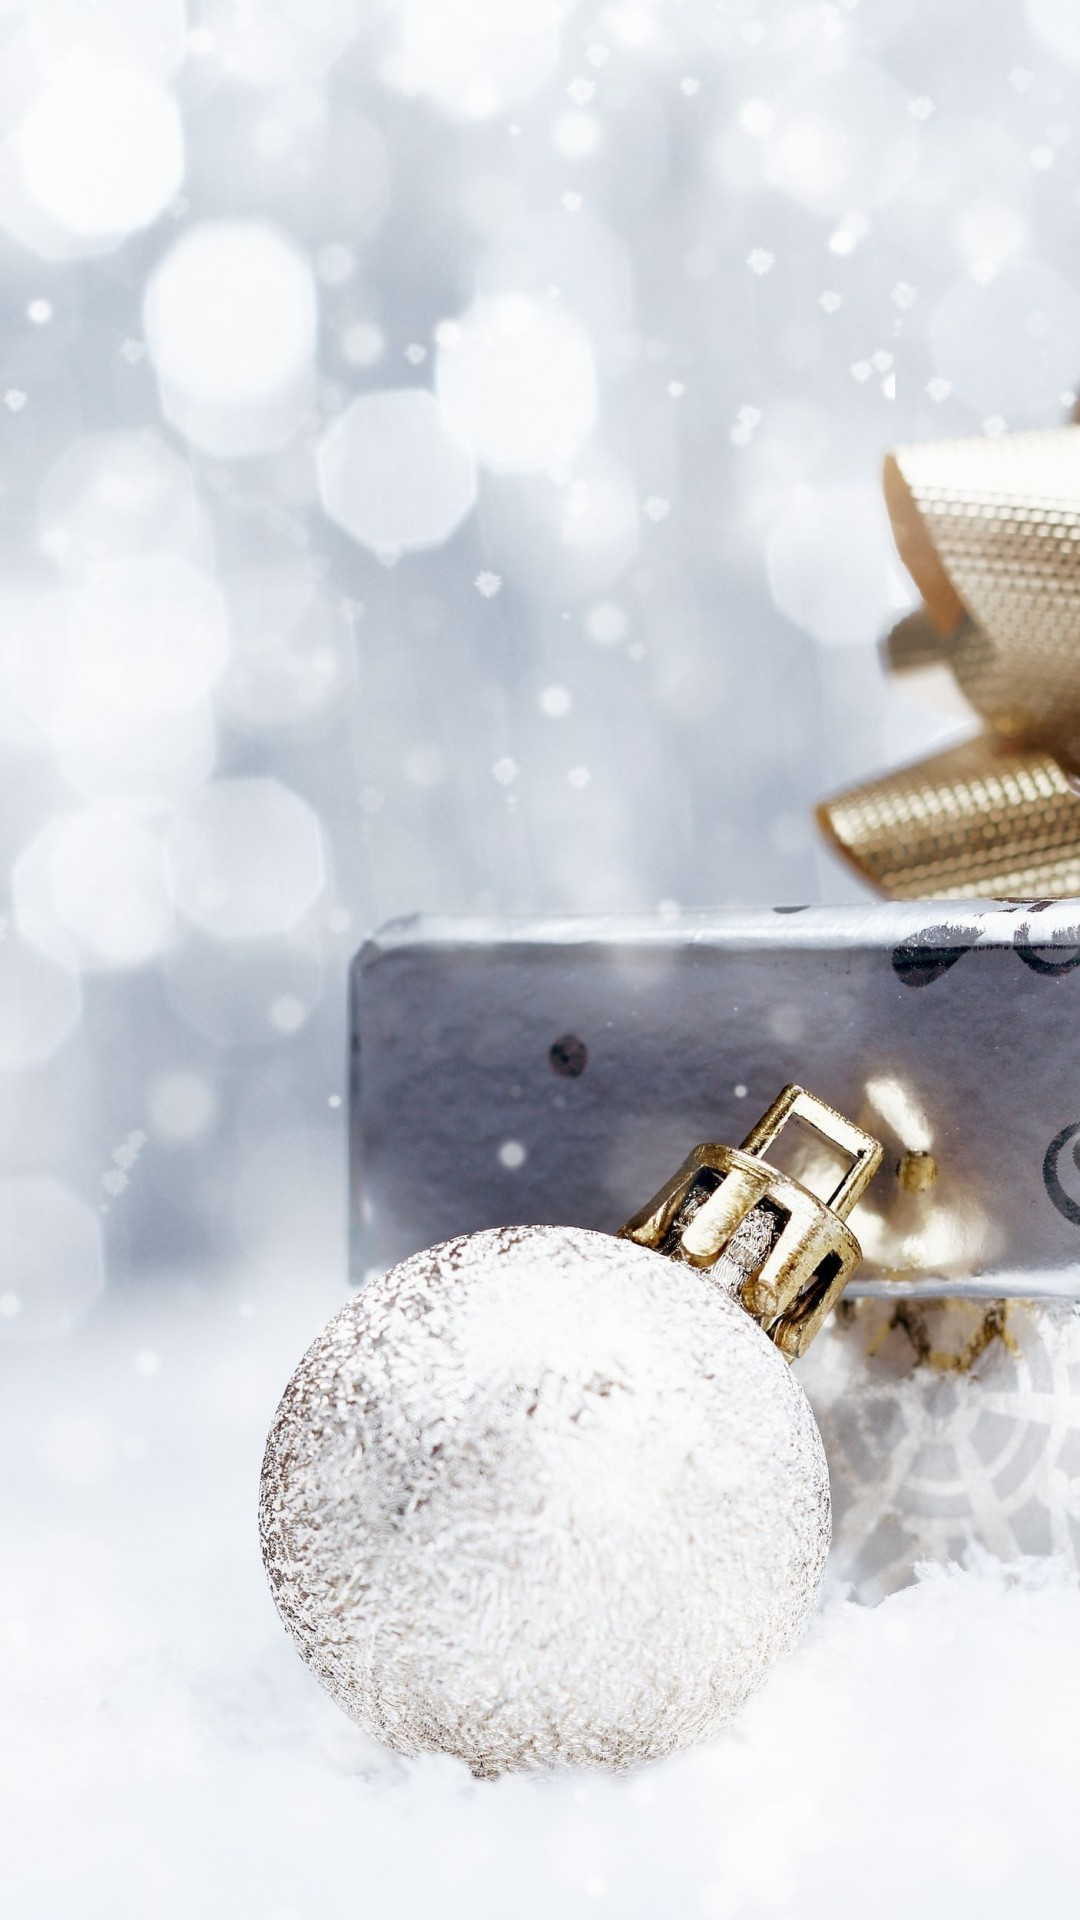 Christmas Gift 2014 iPhone 6 / 6 Plus and iPhone 5/4 Wallpapers